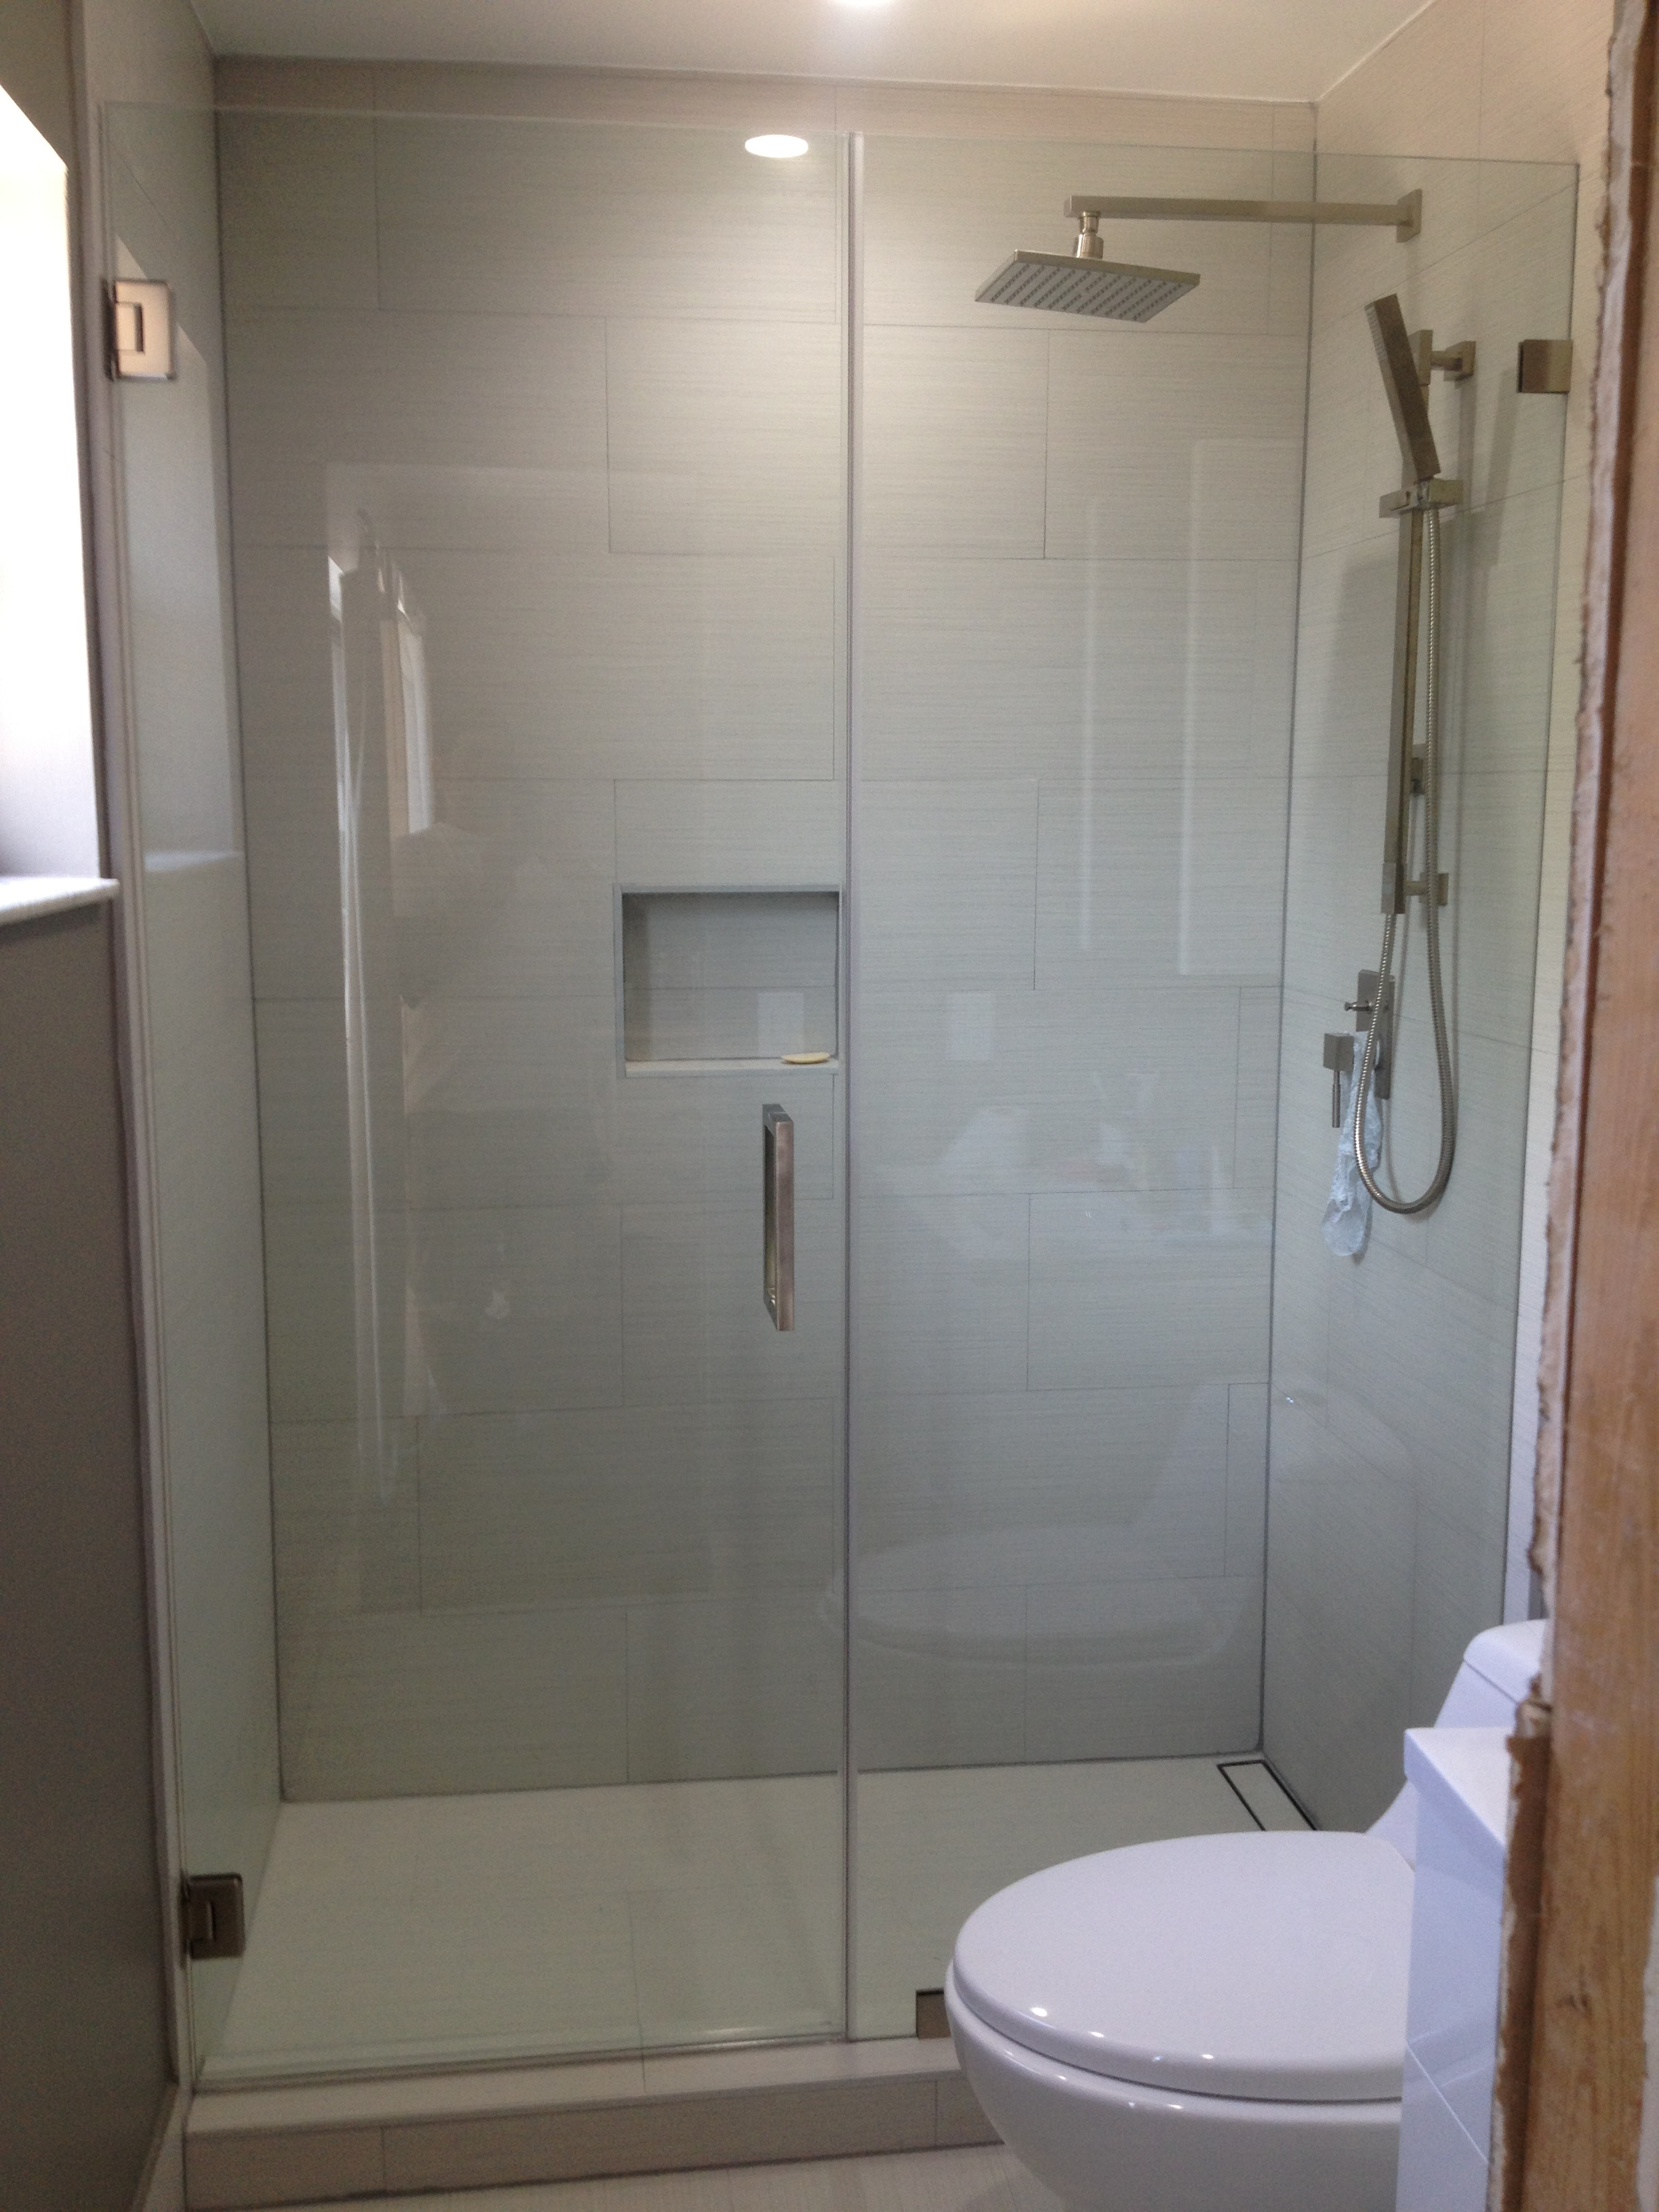 Frameless Shower door ... : door shower - pezcame.com